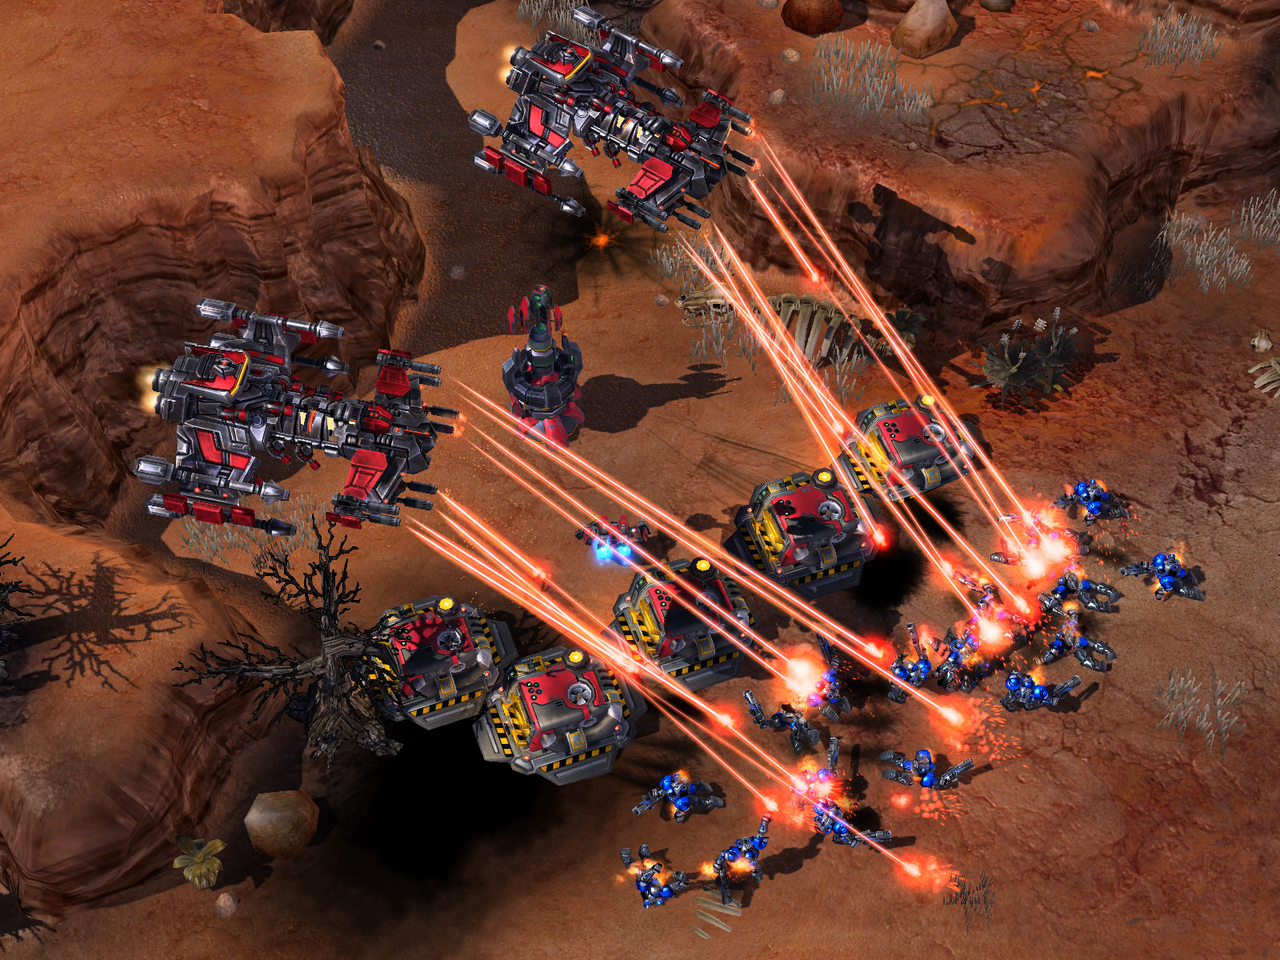 Free download starcraft 2 game full version gudang games for Star craft 2 free 2 play